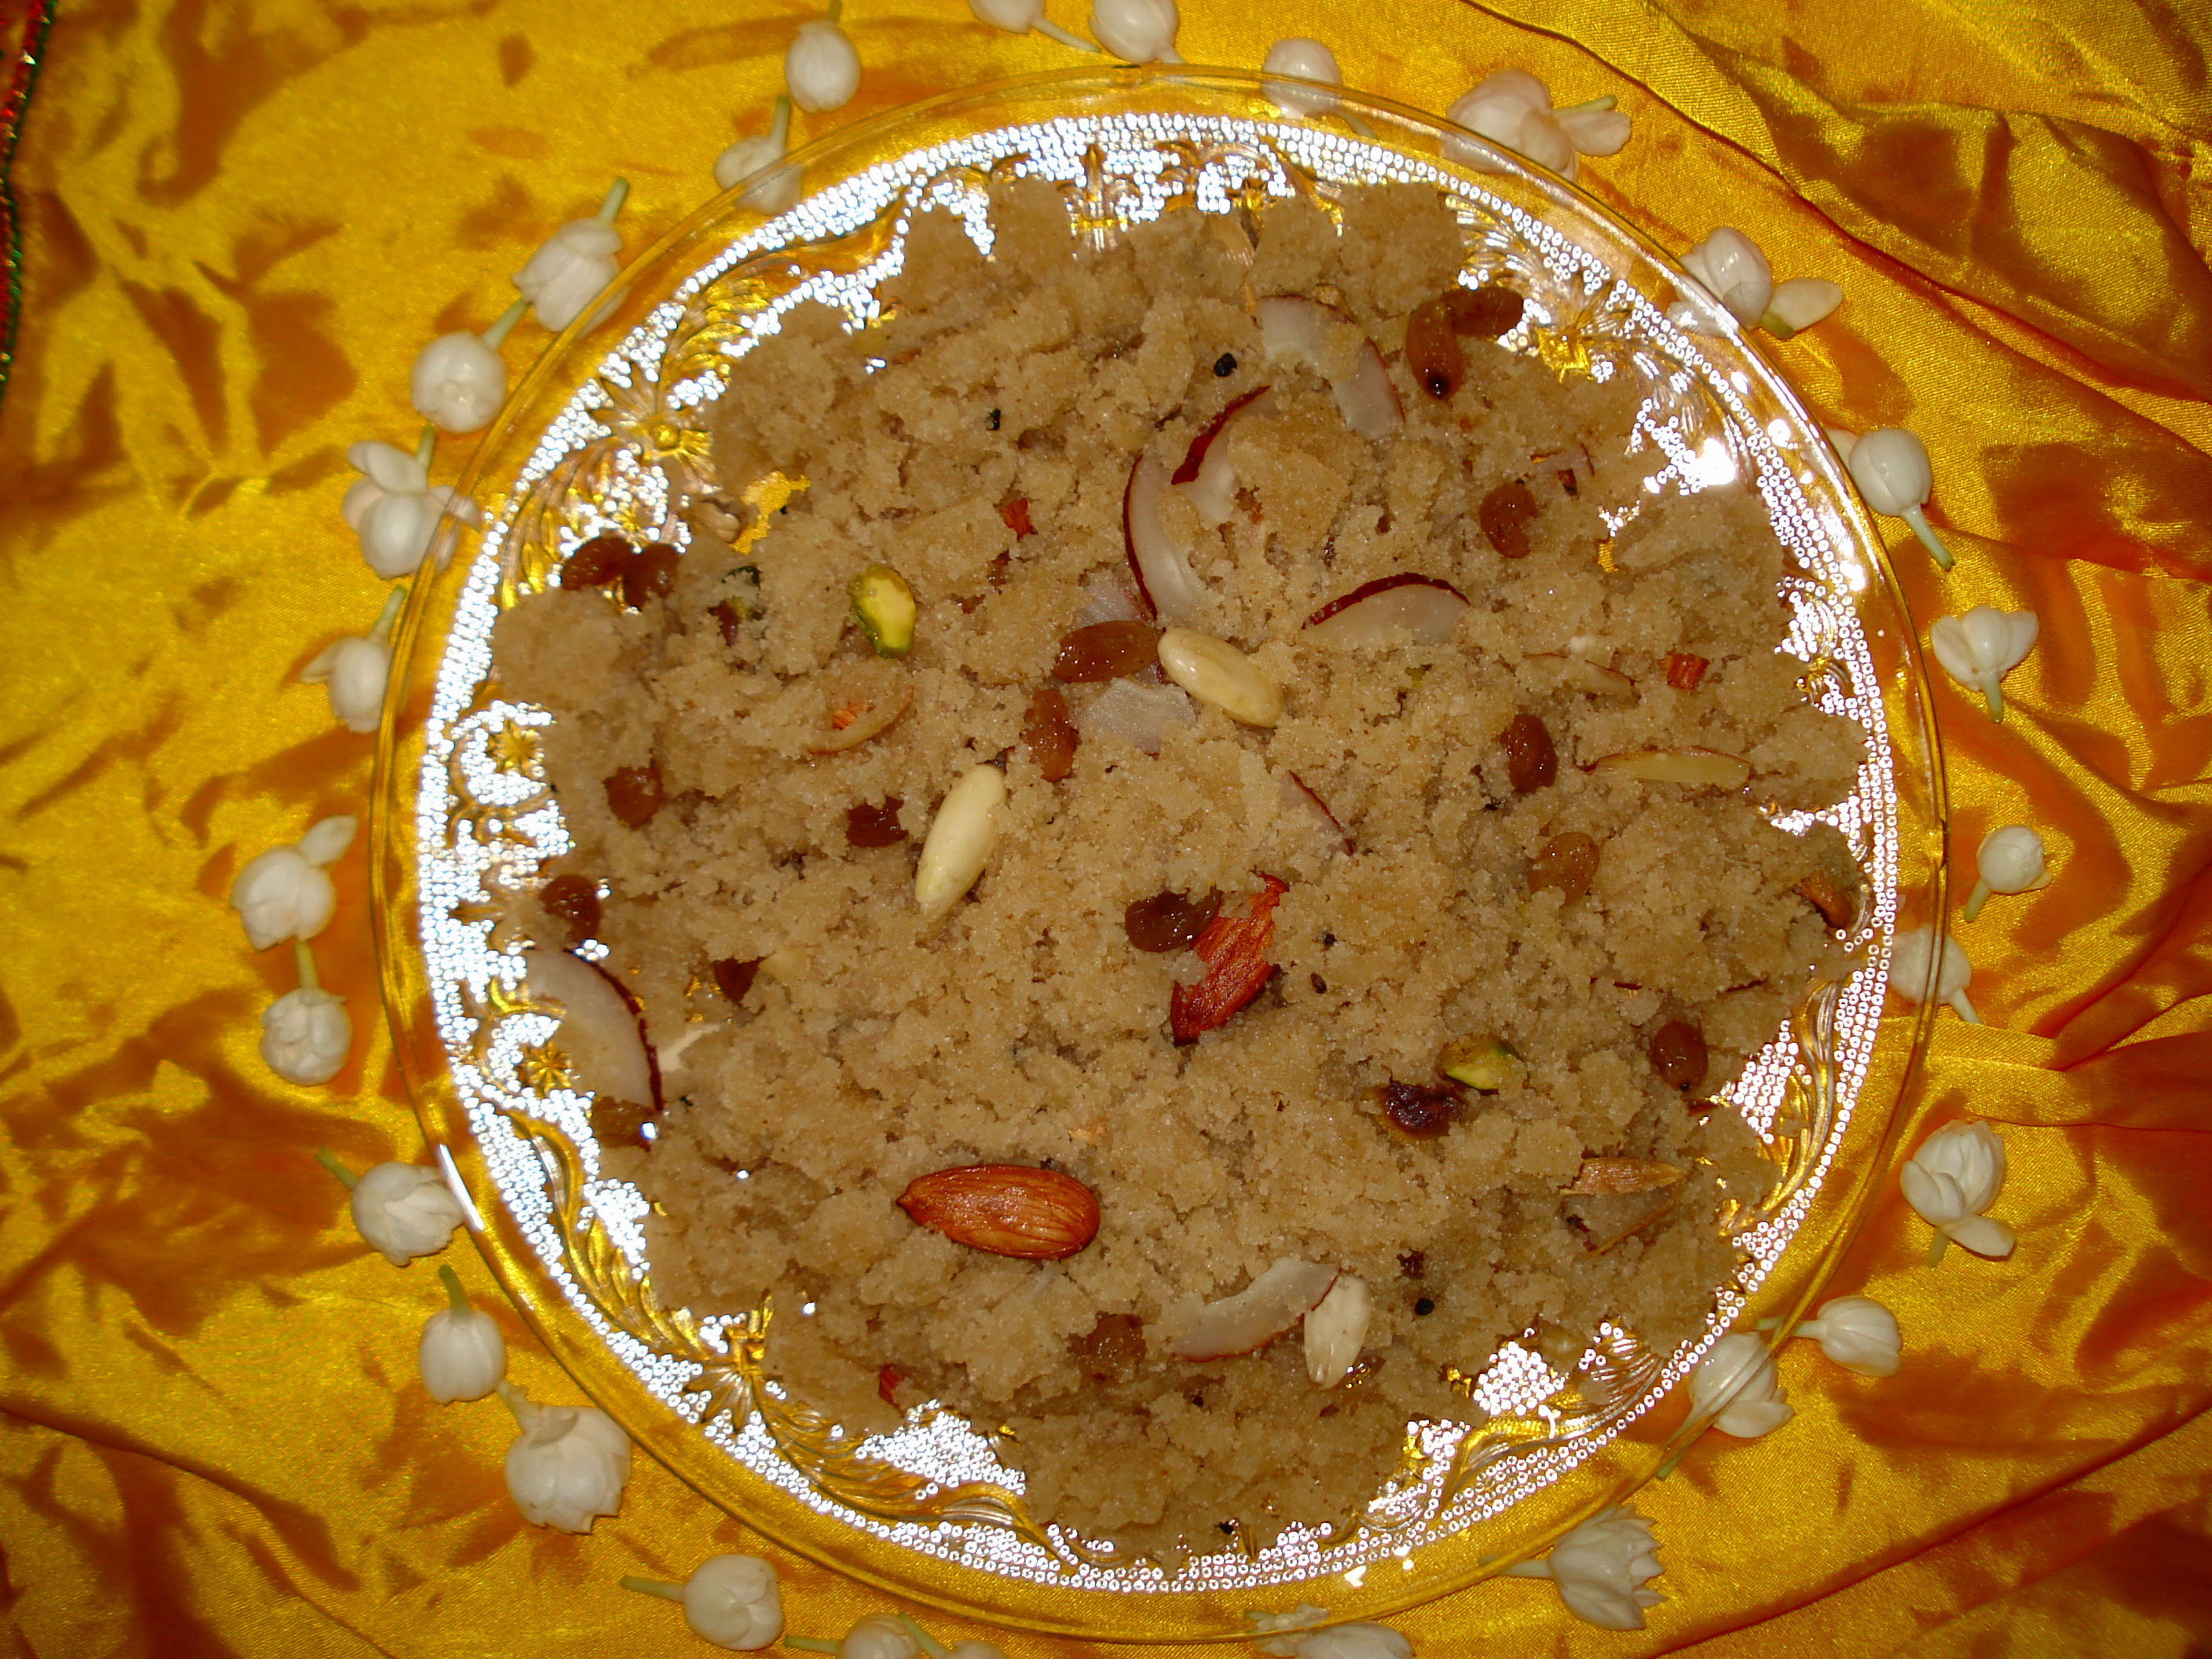 Cuisine of karachi suji ka halwa punjabi style punjabi halwa is an all time sweet dish of punjab cooked on eid shab e barat weddings it is liked by all age group especially by religious peoples forumfinder Images